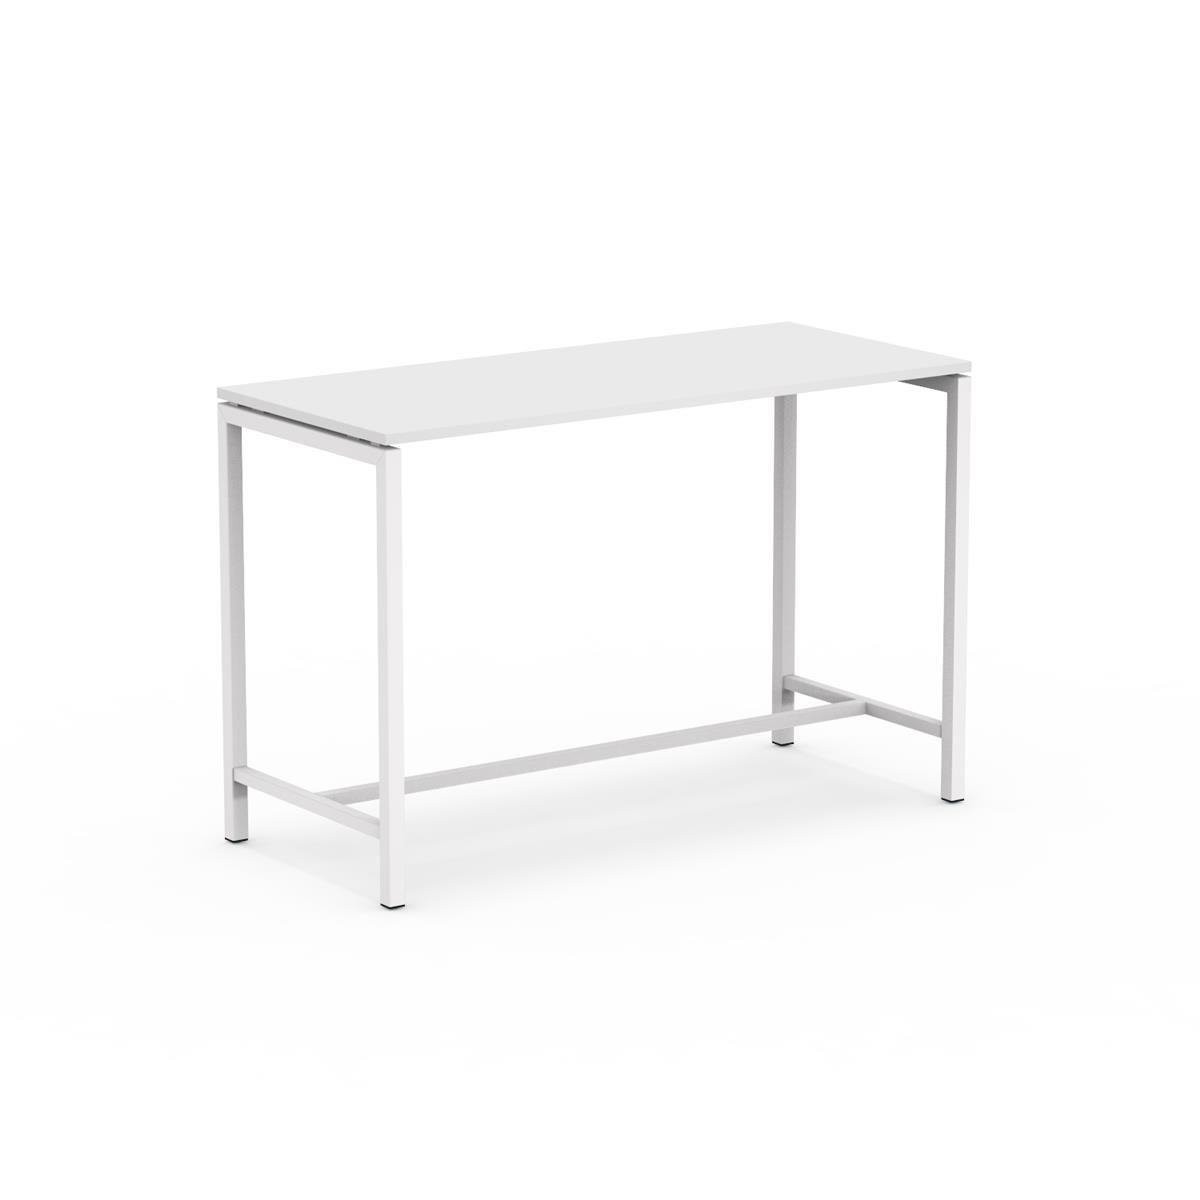 U1 High Table 160 x 70 x H105 cm i hvit melamin